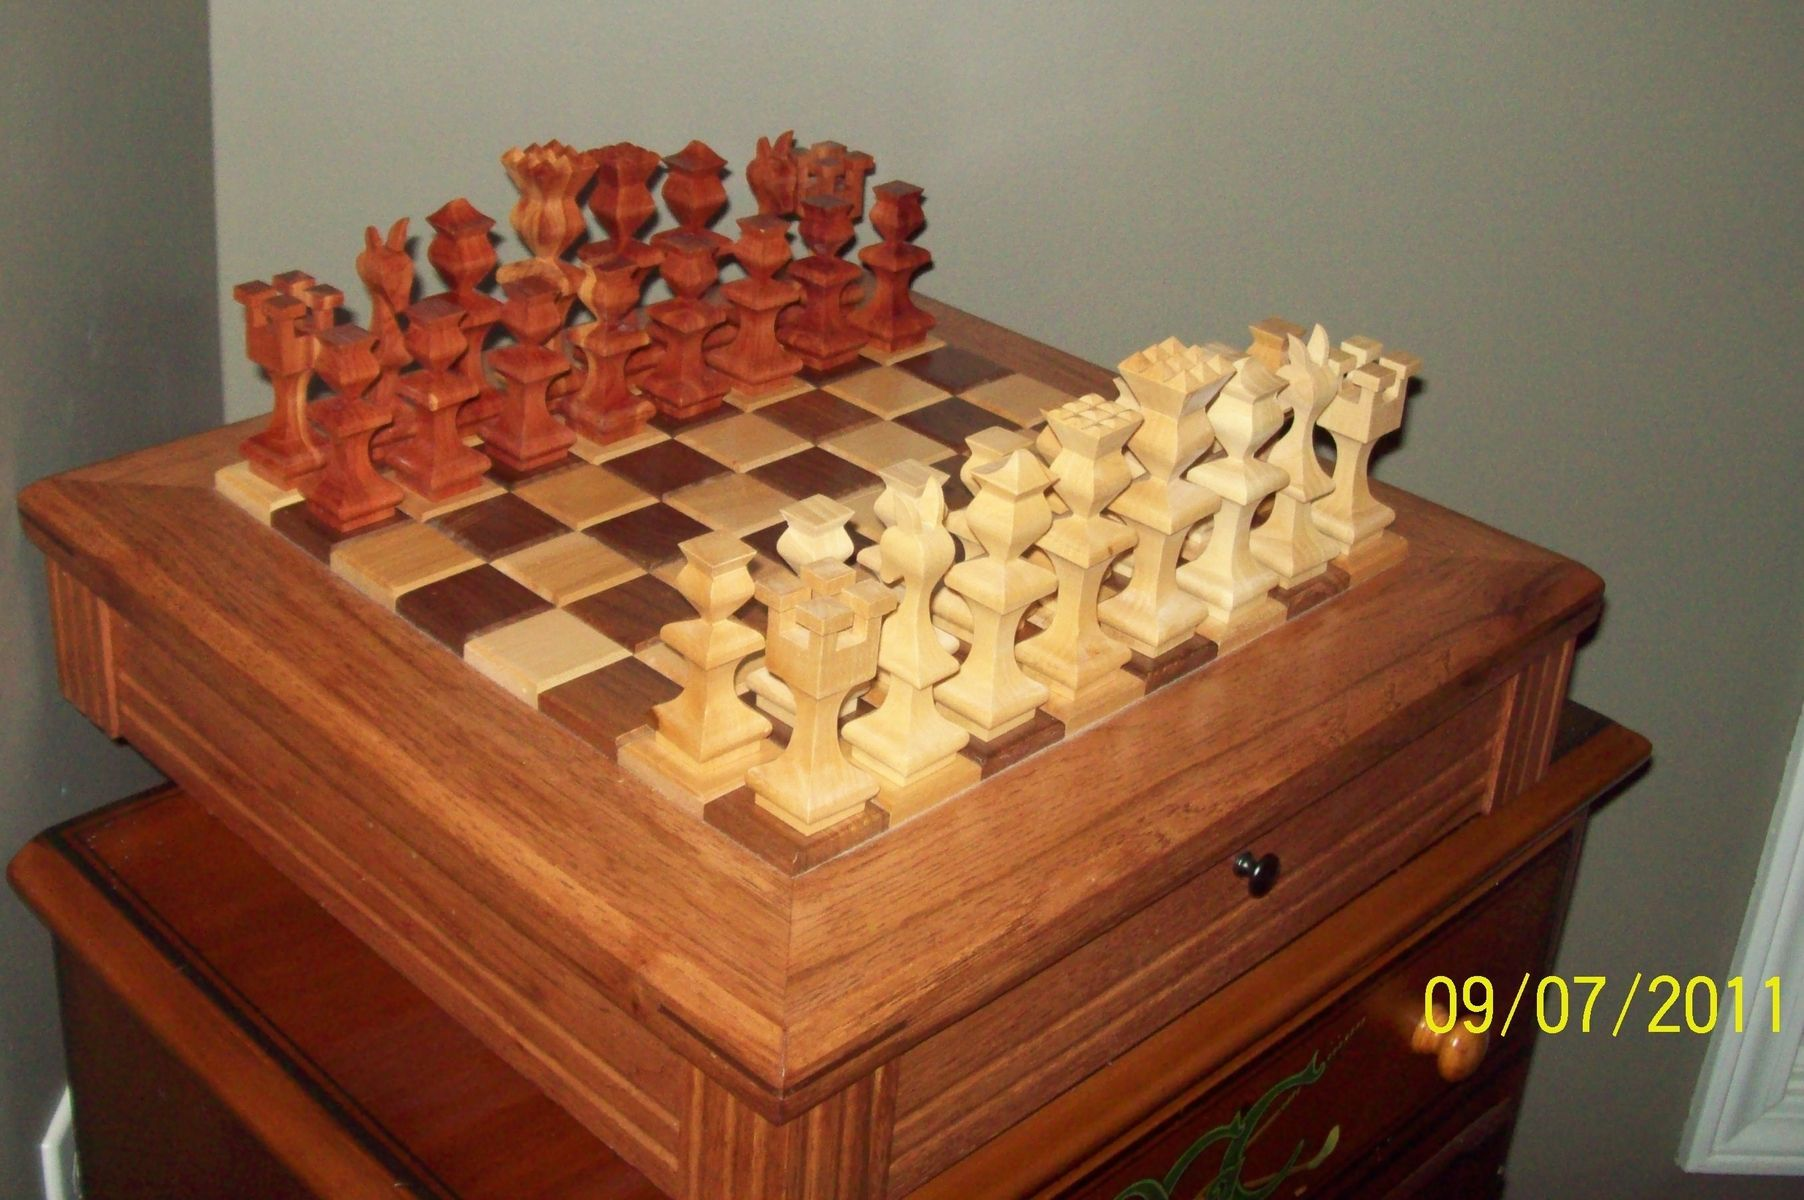 Hand Made Chess Board With Pieces By 4bz Customs